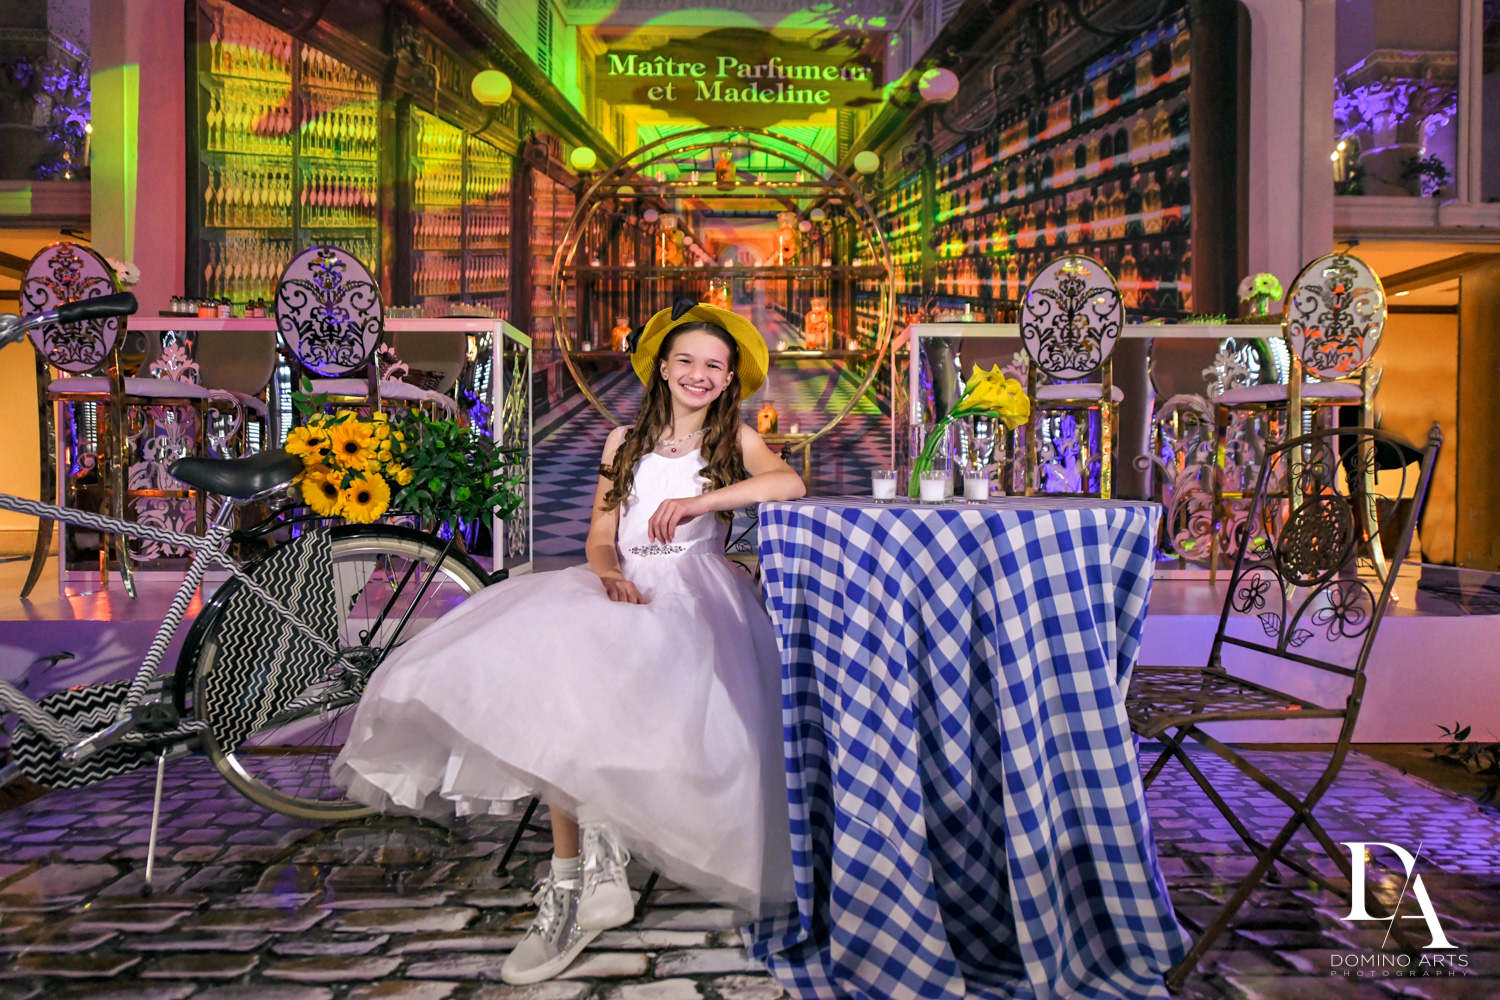 custom backdrop at Madeline in Paris theme Bat Mitzvah at Boca Raton Resort and Club by Domino Arts Photography